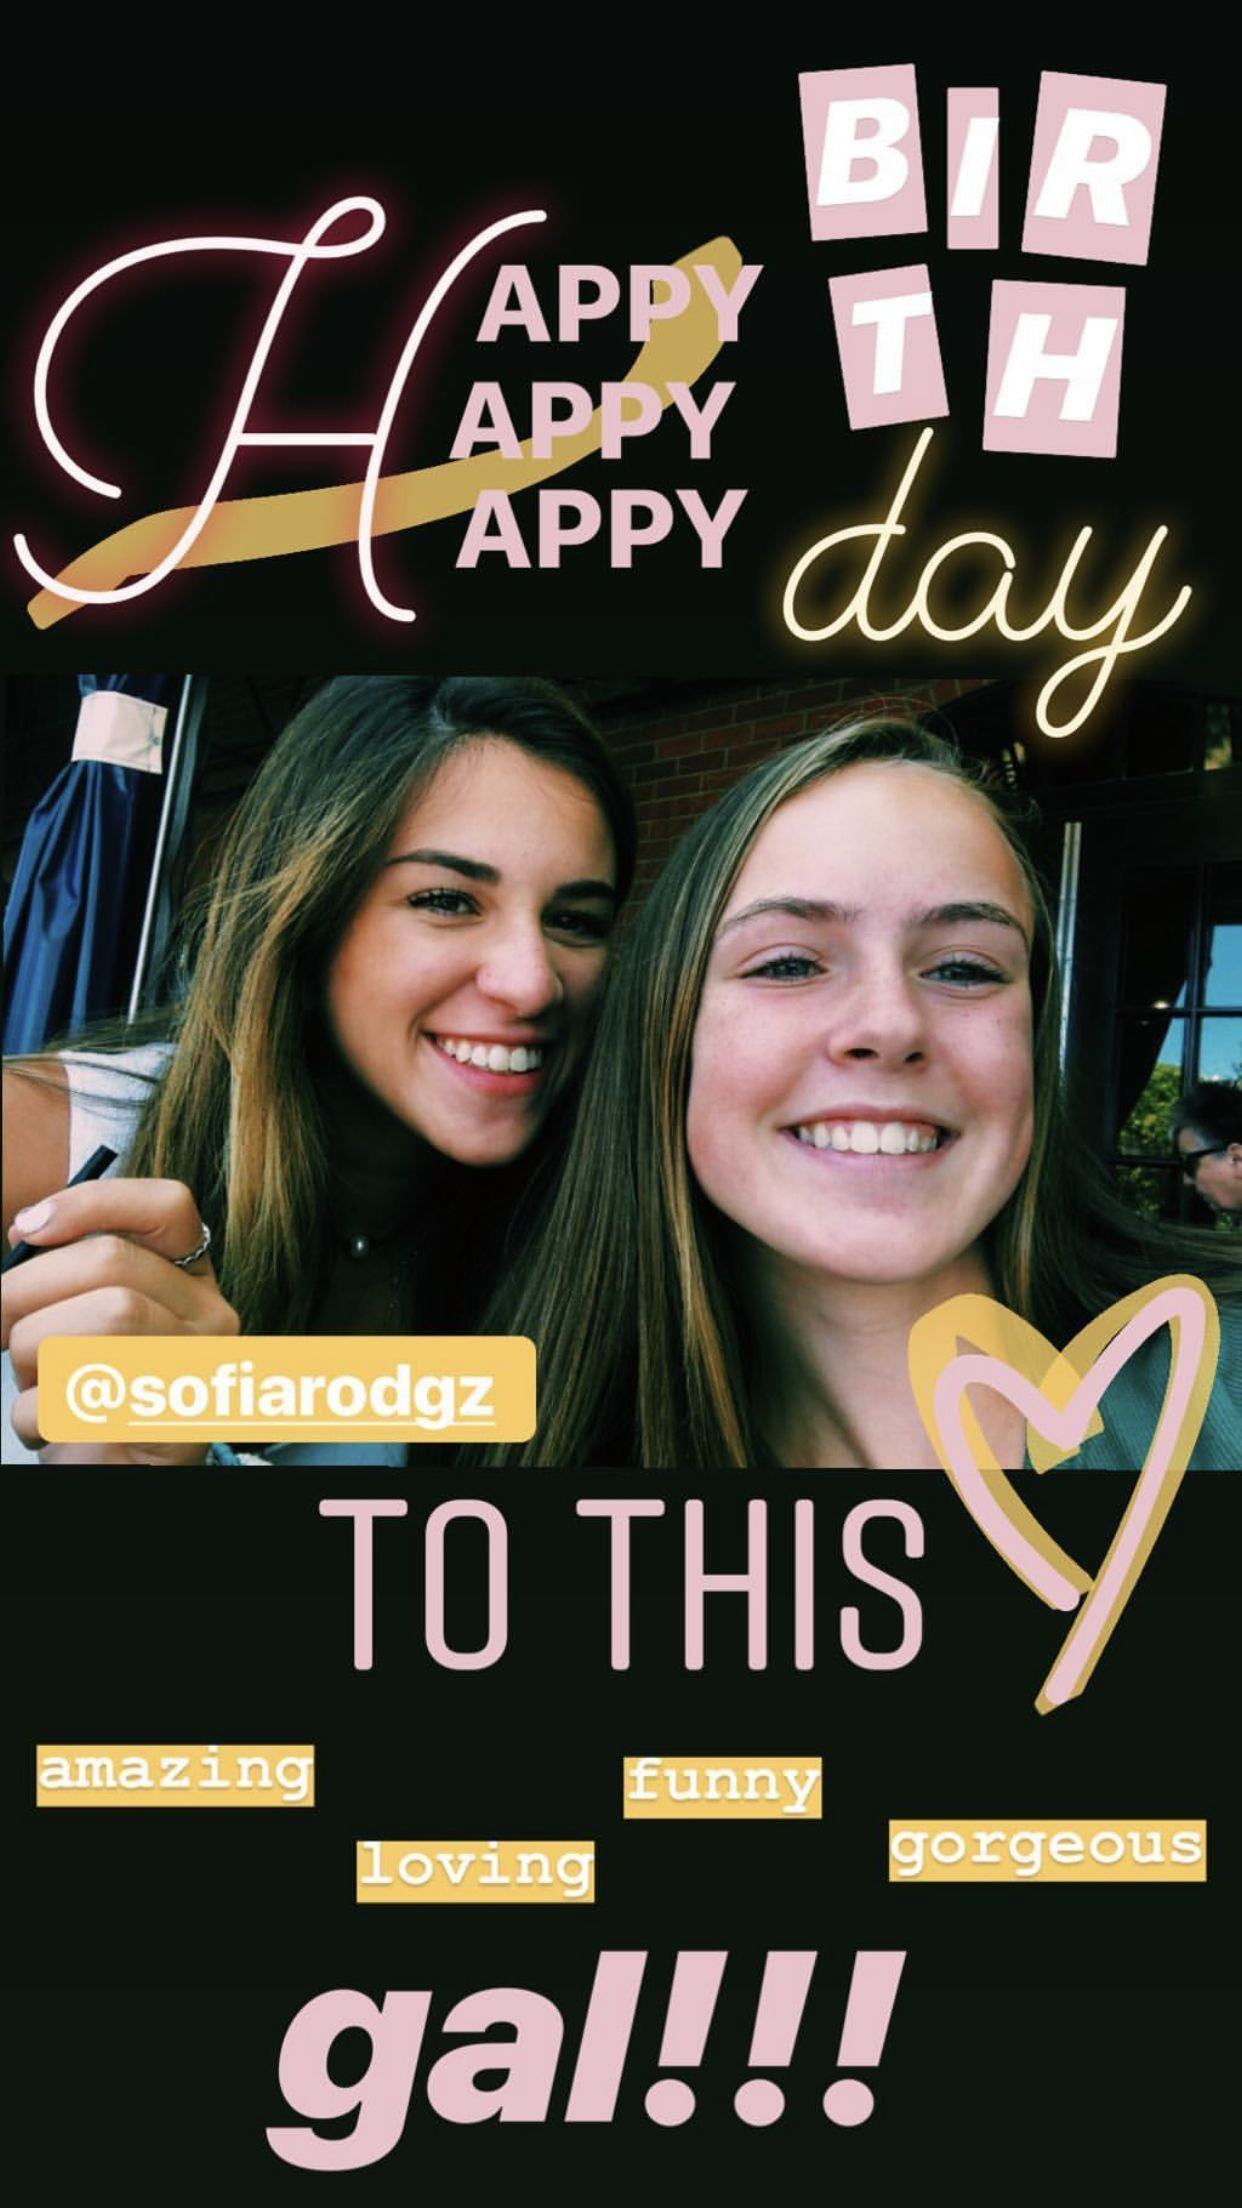 Pin by Tanu Detroja on birthday in 2020 Instagram story